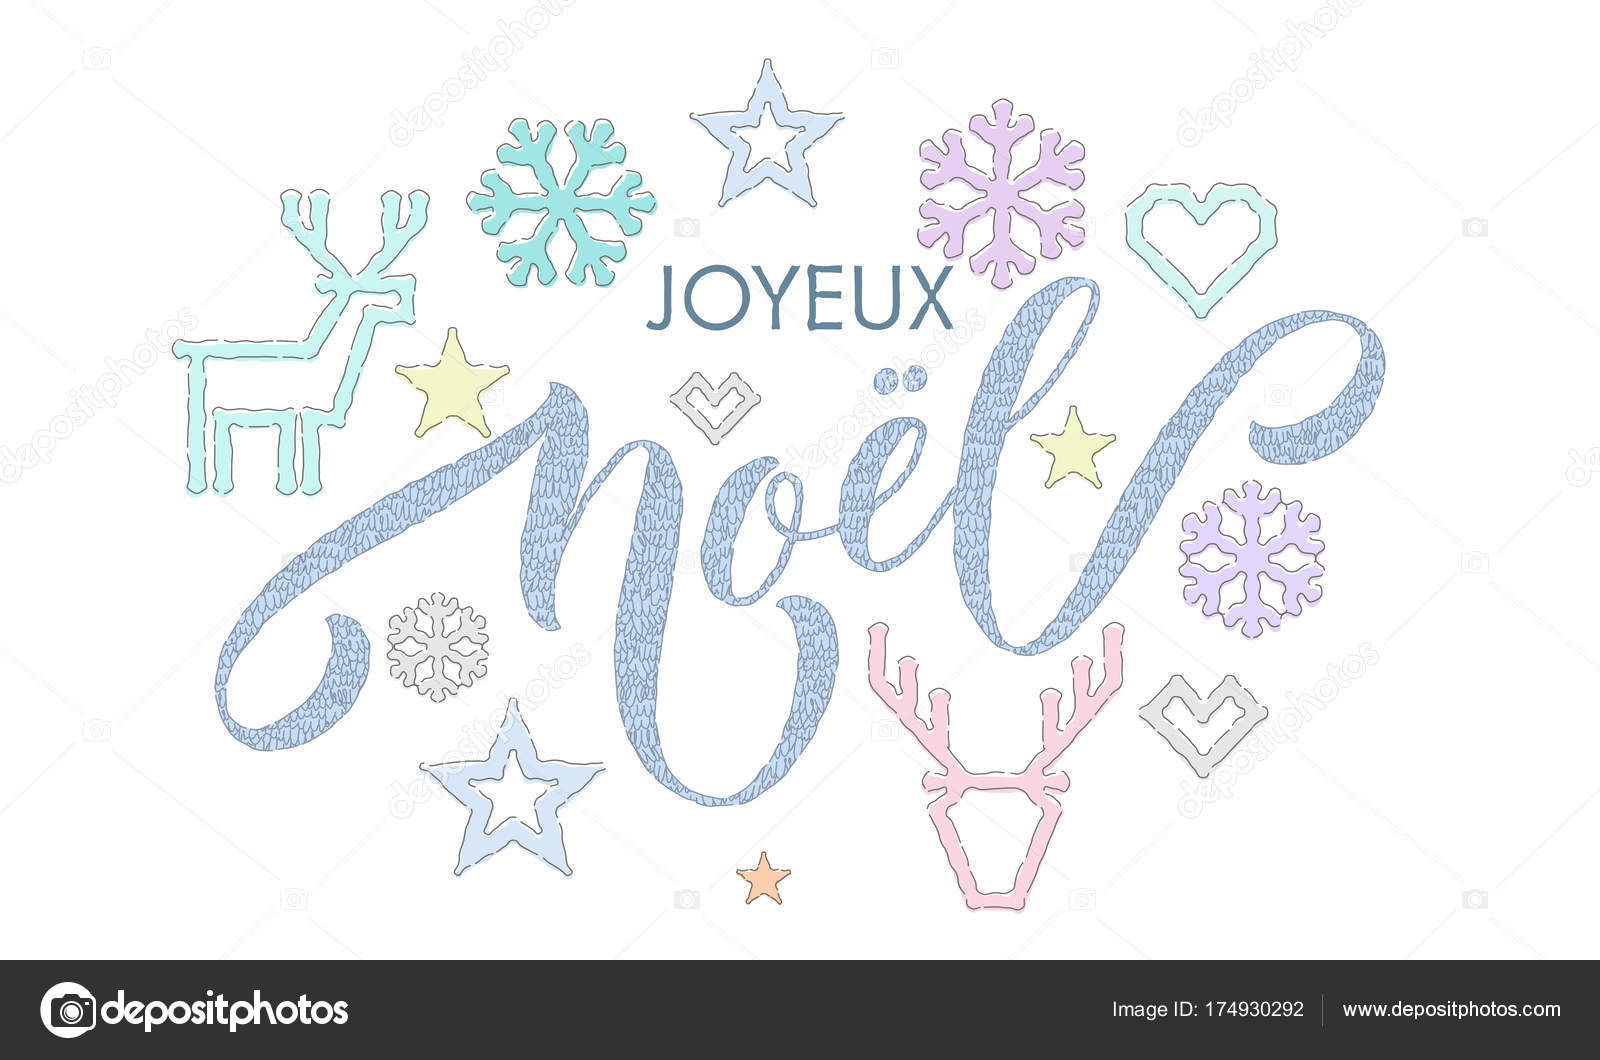 Joyeux noel french merry christmas embroidery font and knitted joyeux noel french merry christmas embroidery font and knitted decoration for holiday greeting card design m4hsunfo